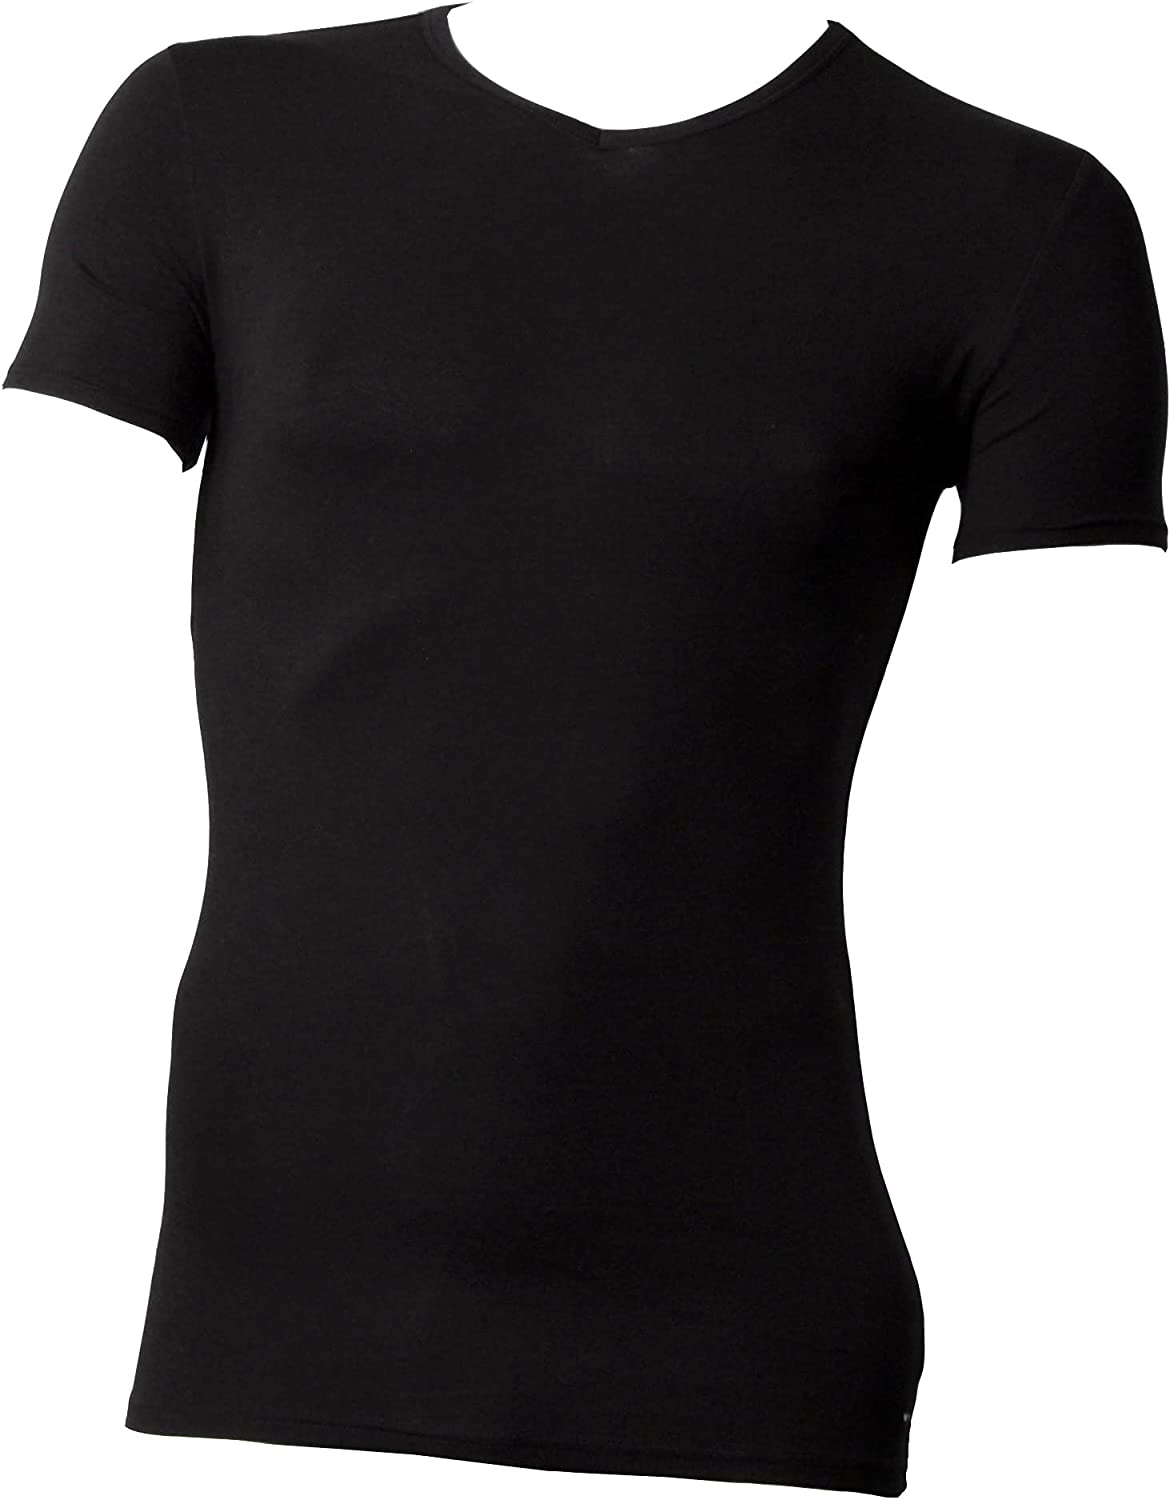 Tommy Hilfiger New Shipping Free Shipping 3-Pack Premium V-neck Men's Max 62% OFF T-Shirts Black